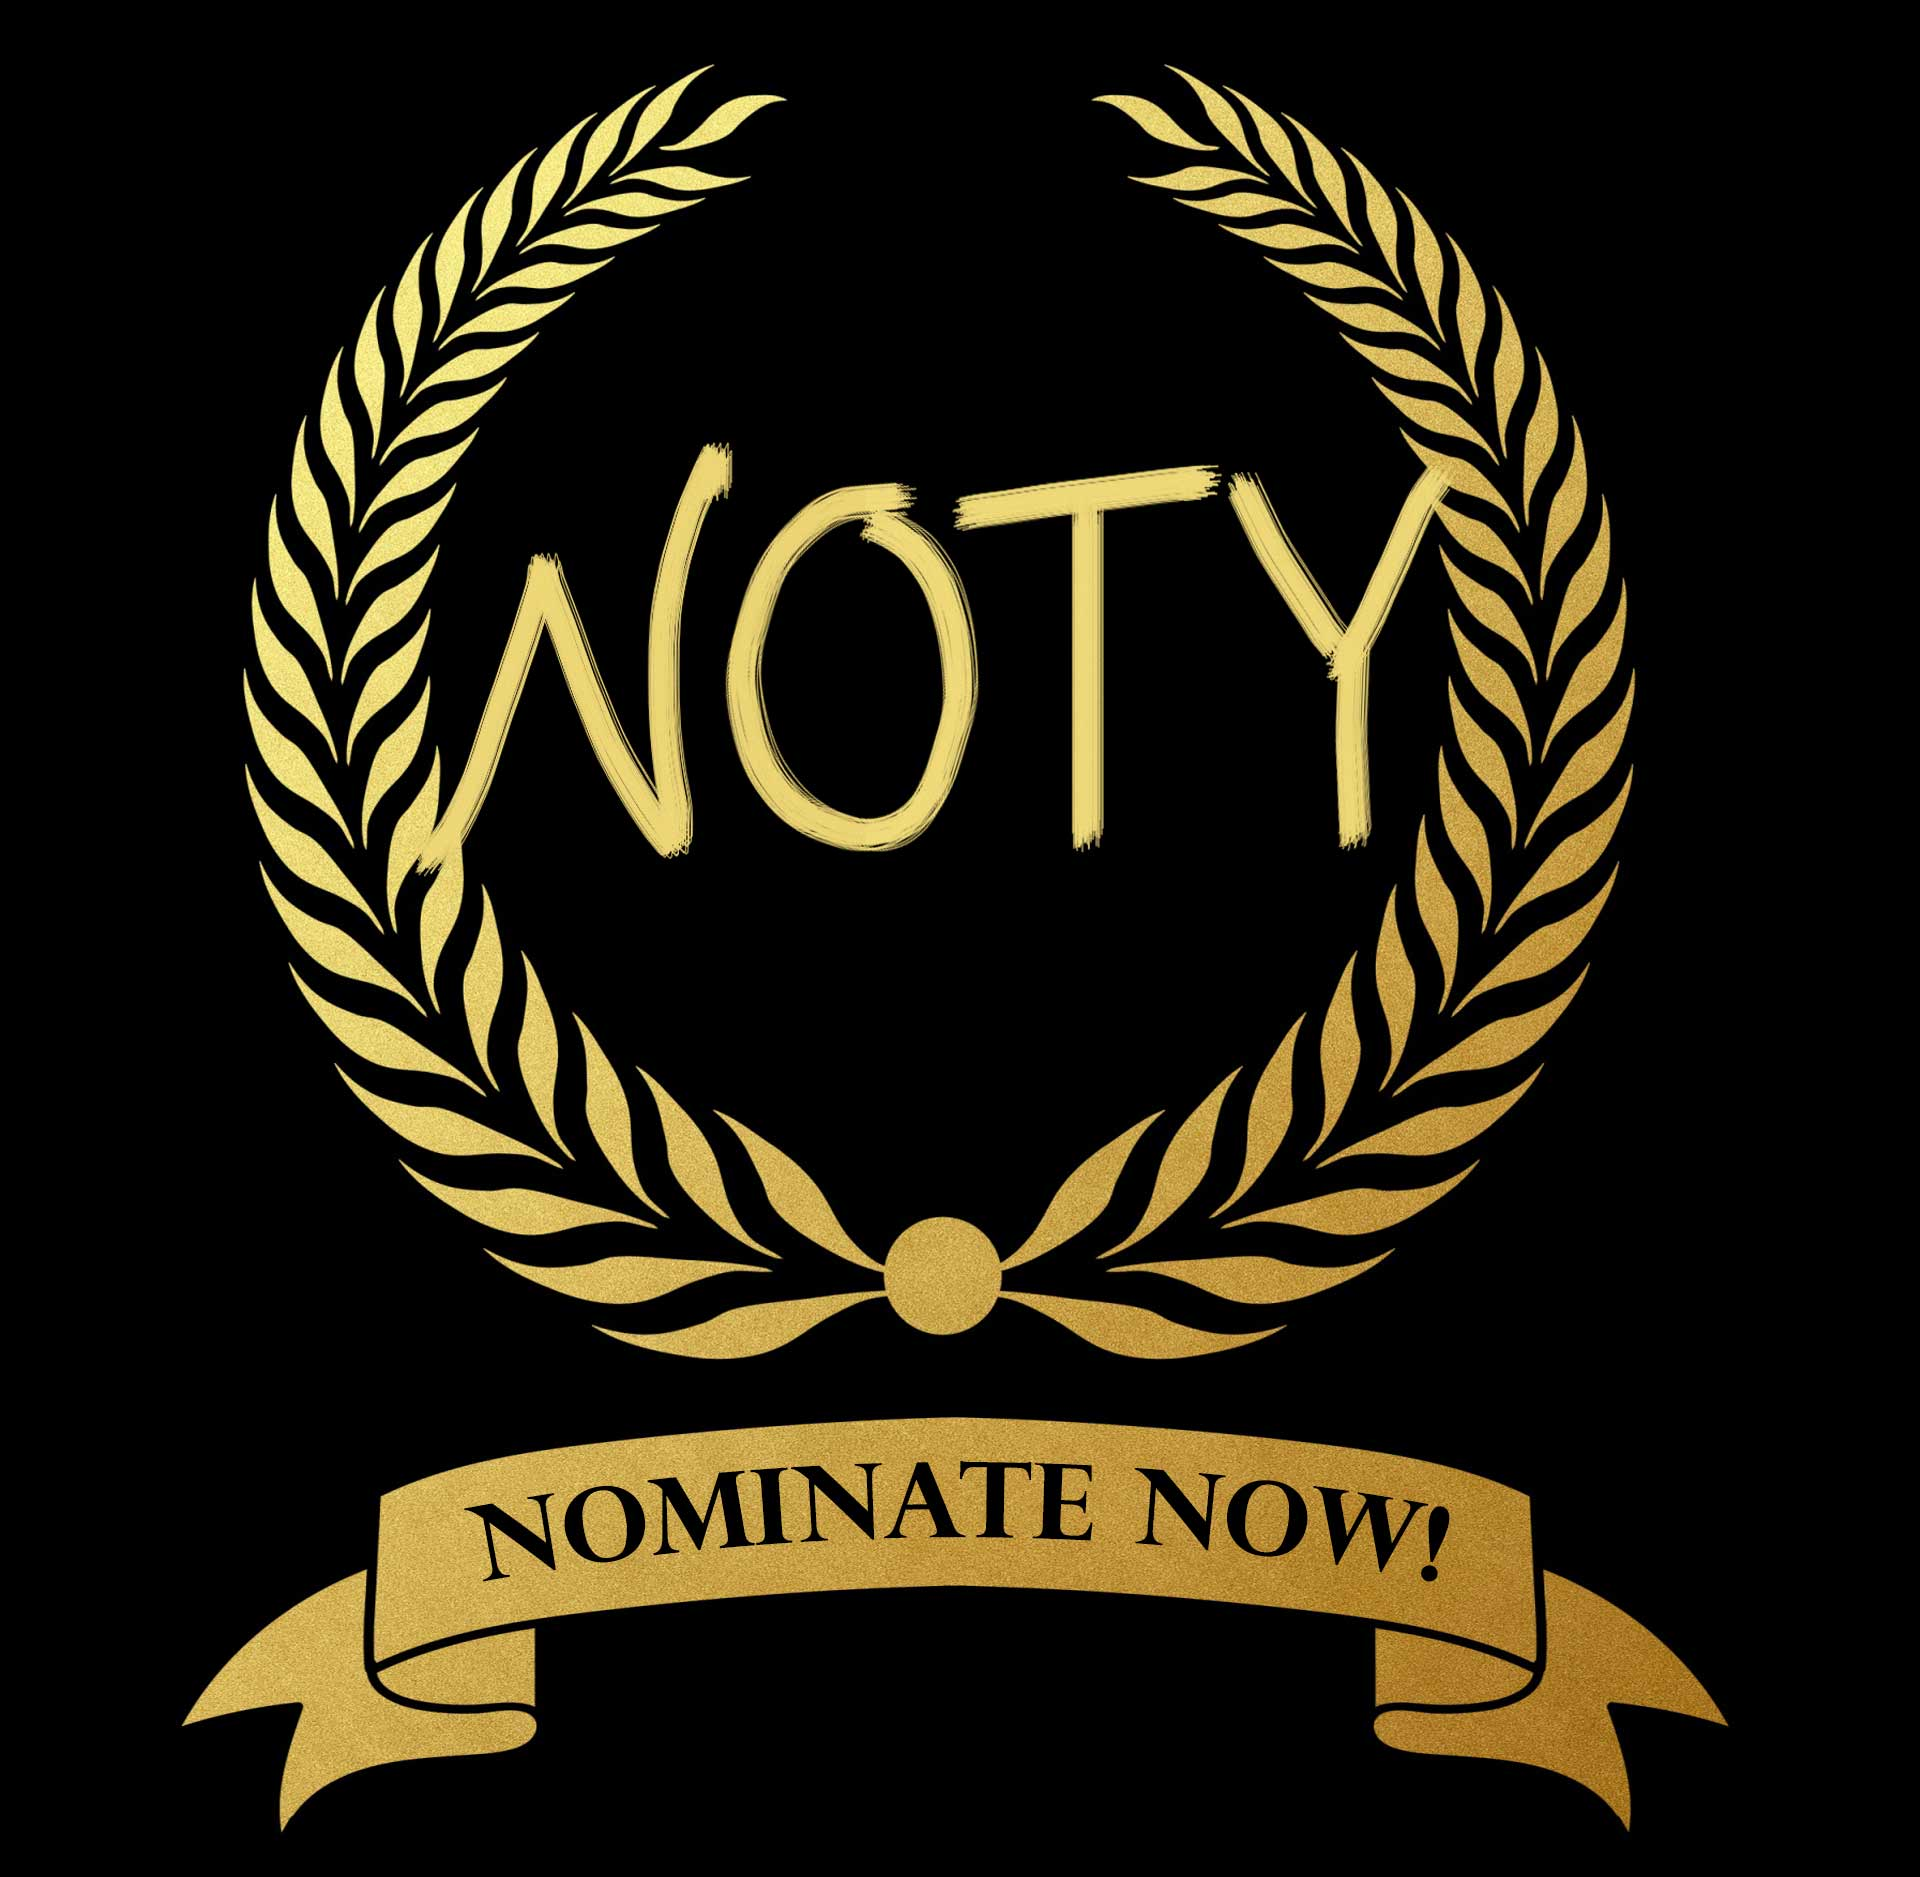 NOTY nominate now banner